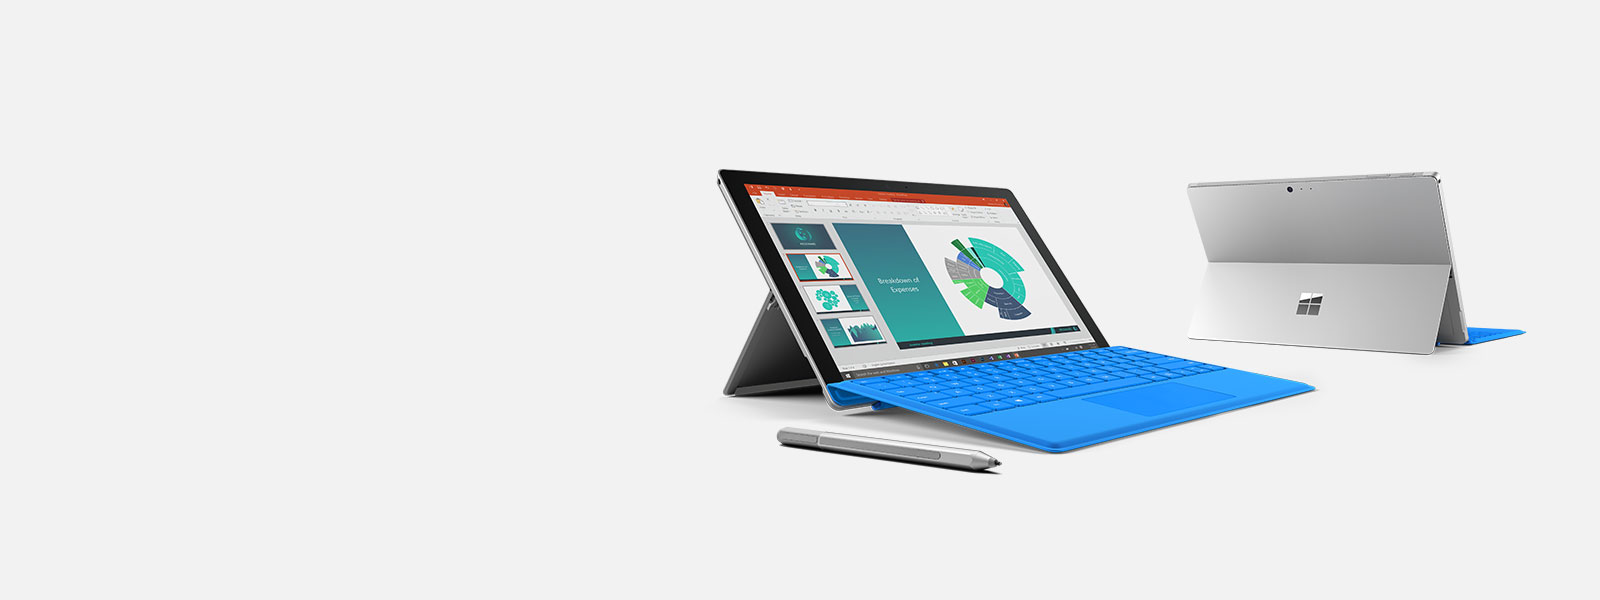 Surface Pro 4-enheter og Surface-penn